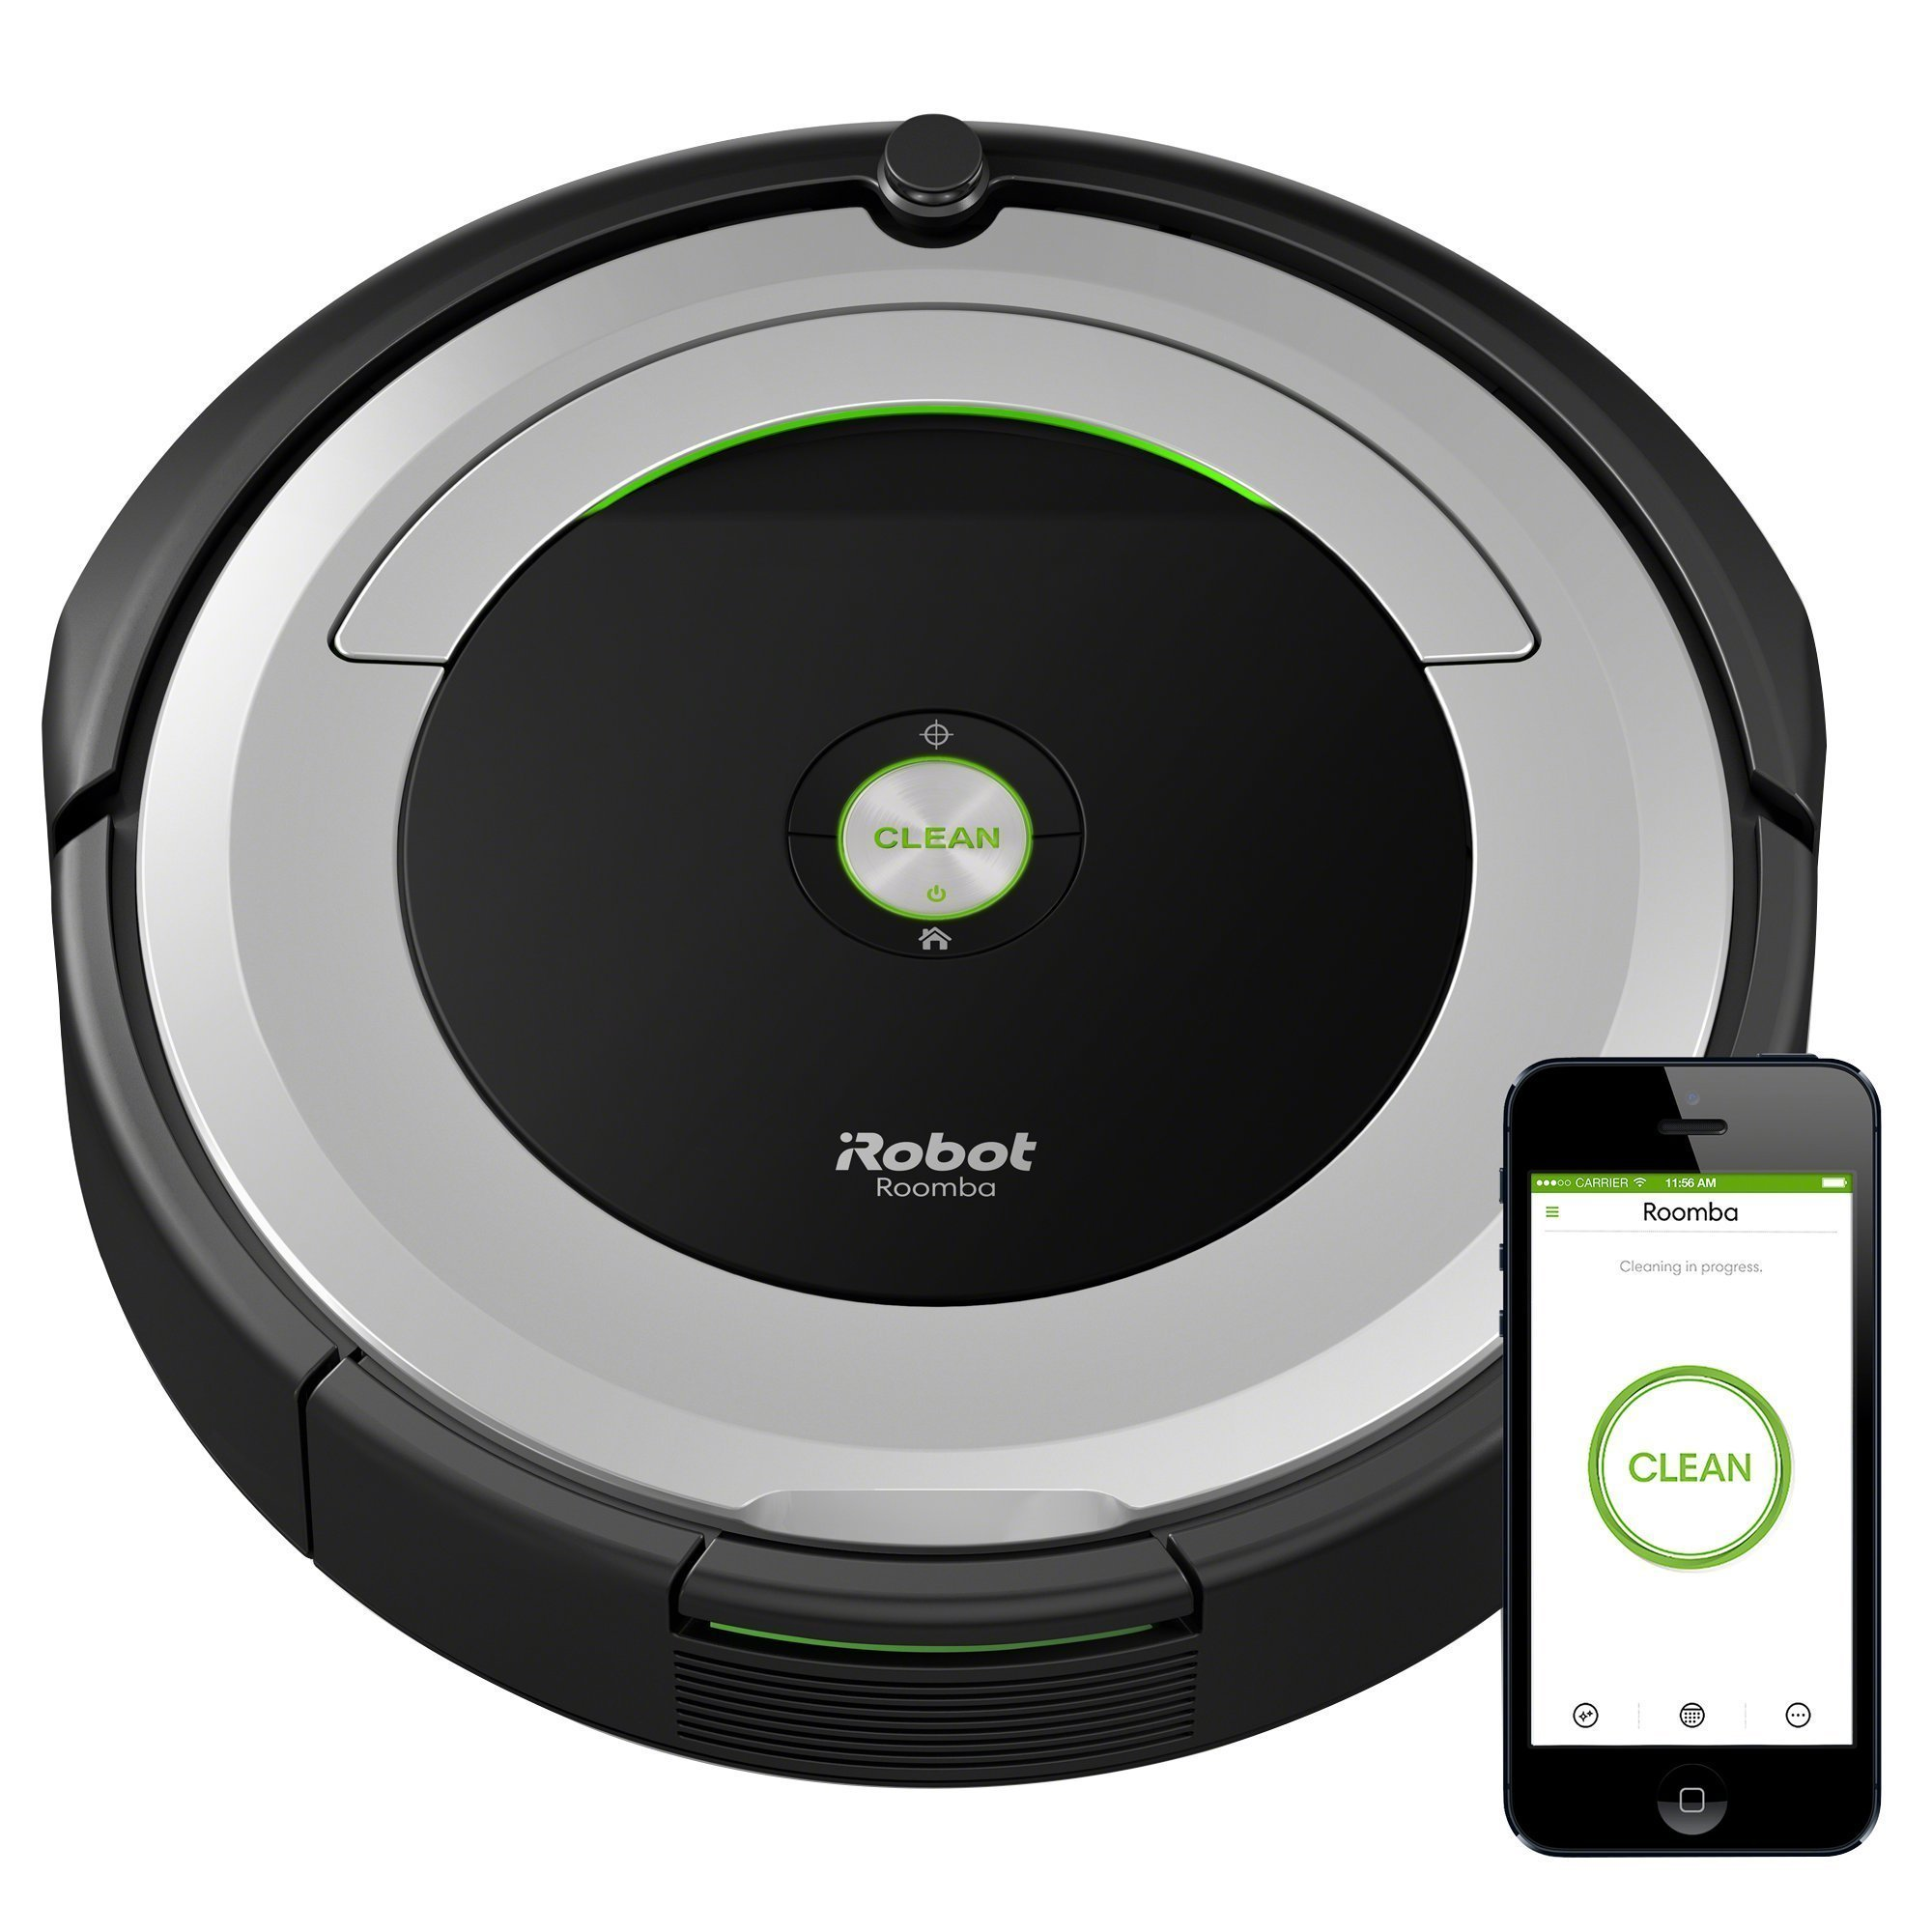 iRobot Roomba 690 Robot Vacuum with Wi-Fi Connectivity by iRobot